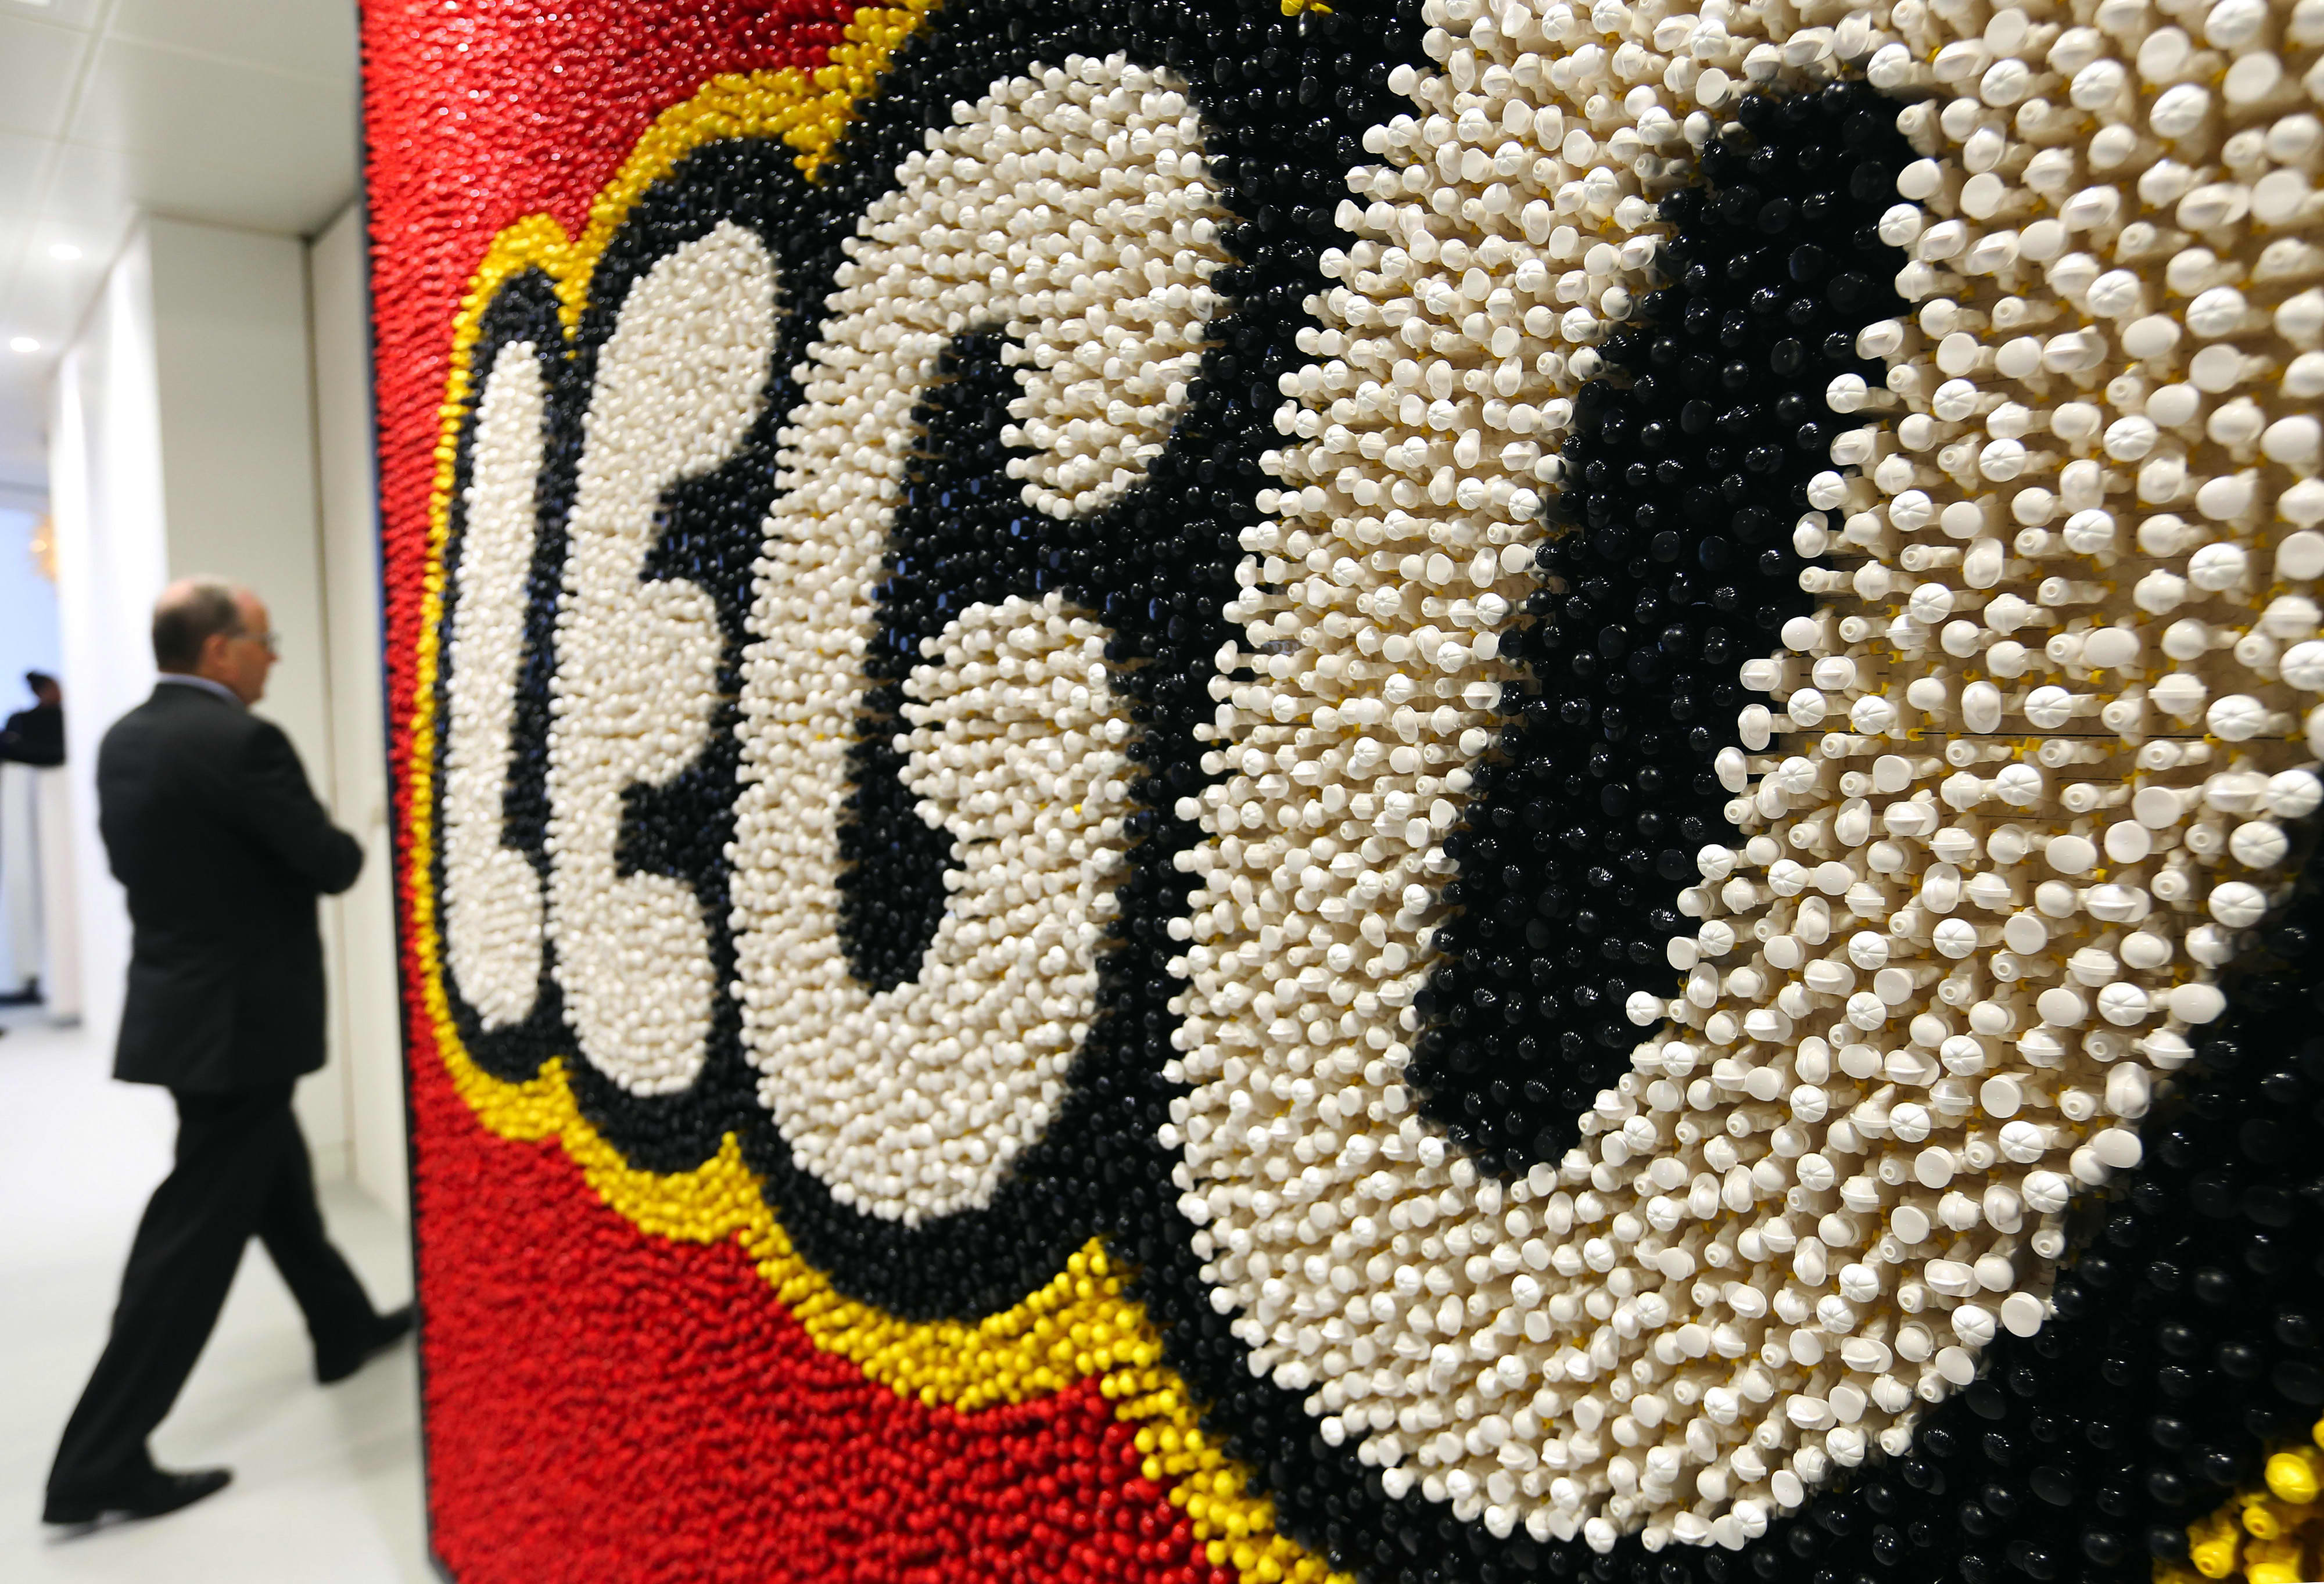 Toymaker Lego appoints new chief executive